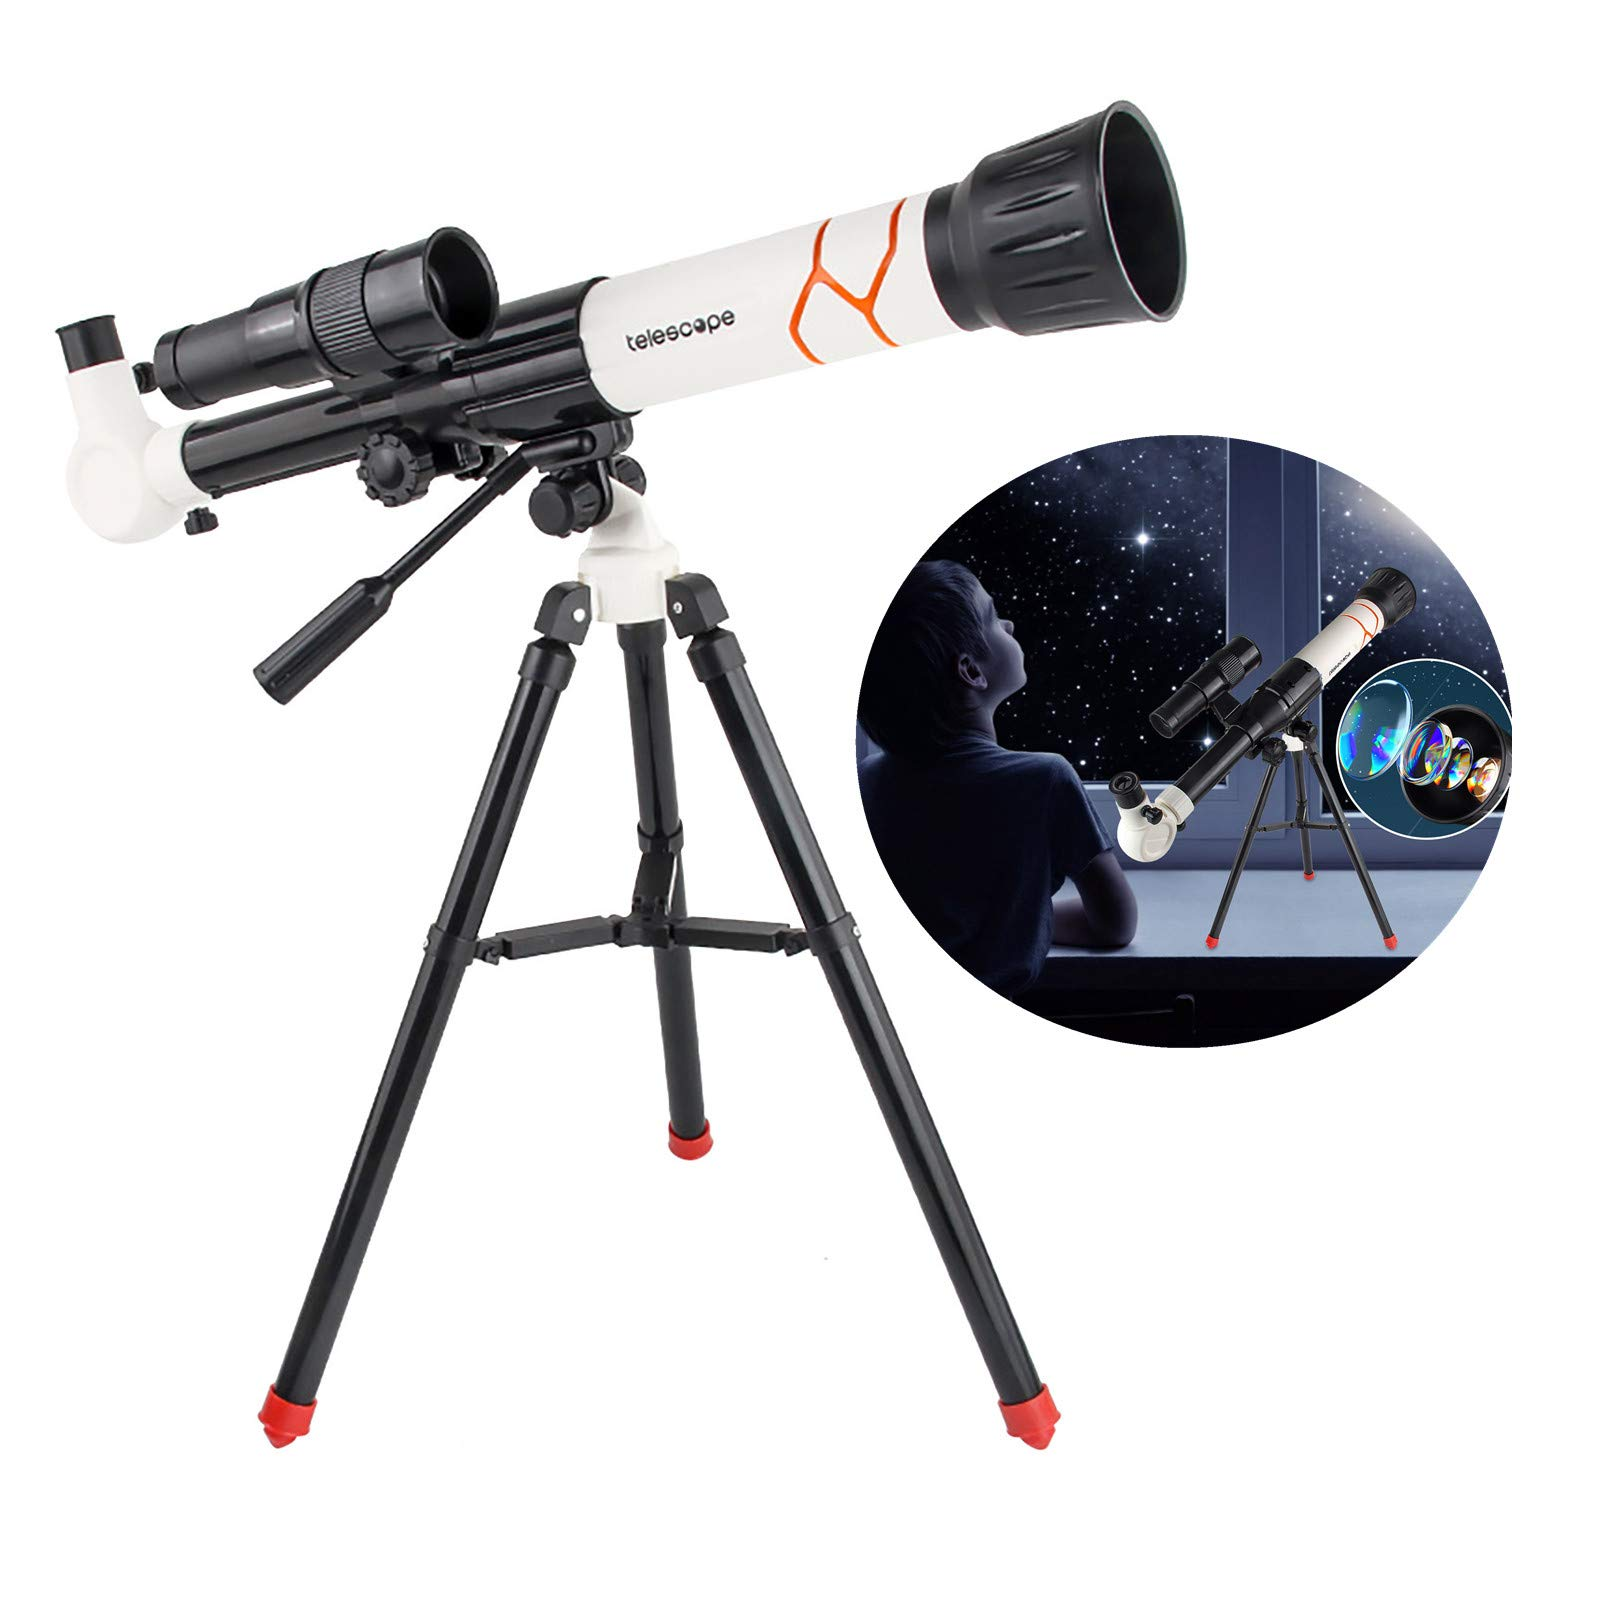 High-Powered Monocular Astronomical Telescope for Kids & Astronomy Beginners, Portable Travel Astronomical Refractor Telescope with Tripod, 3 Eyepieces, & Finder Scope (White)